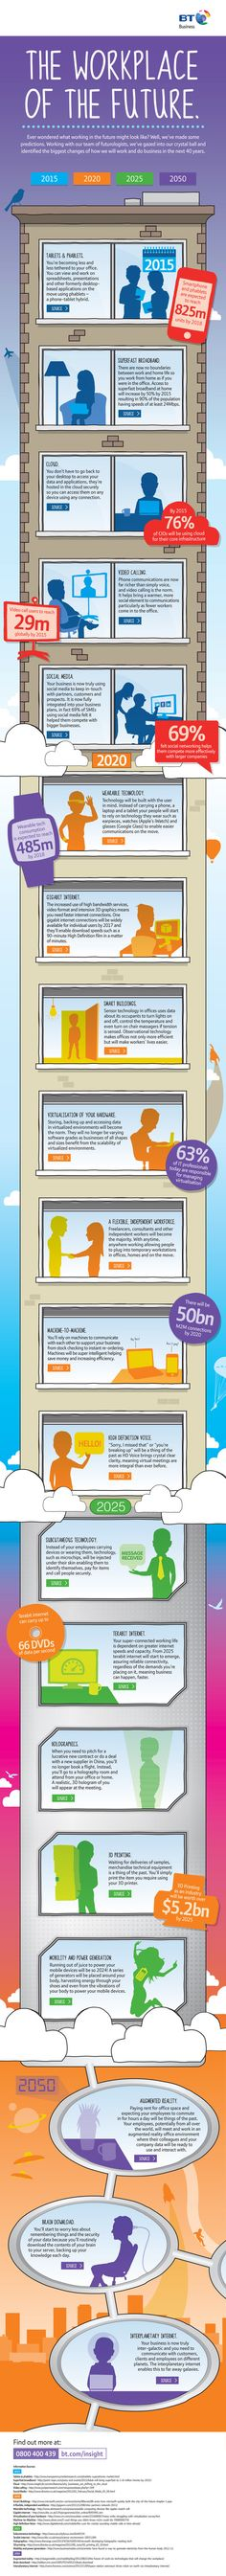 The Workplace of the Future Infographic